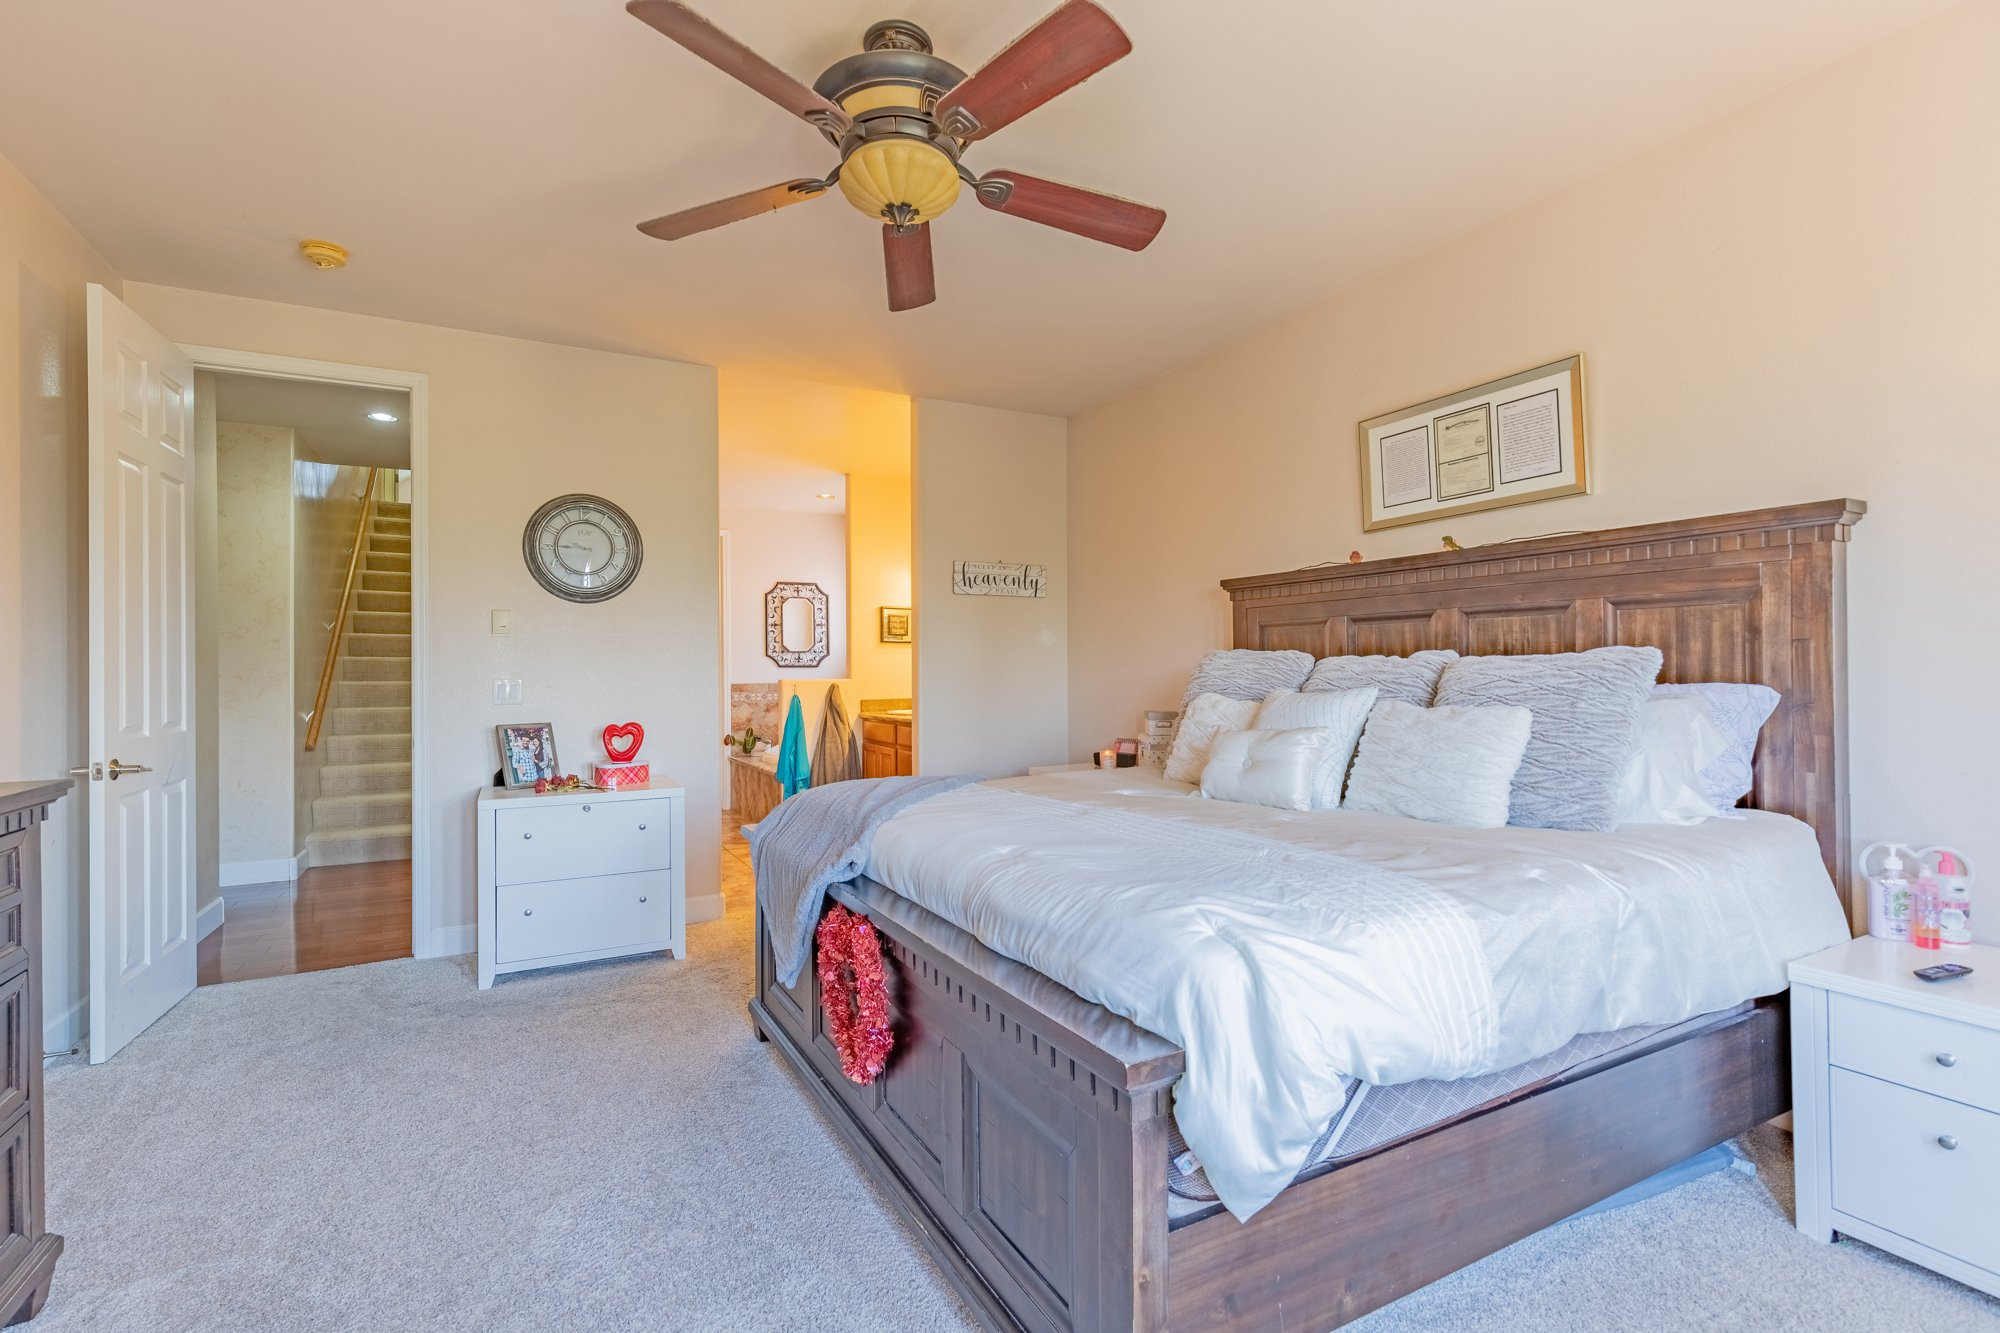 Main Suite with Carpet - 2924 Lost Creek Rd S. Montrose, CO 81401 - Atha Team Real Estate Agents